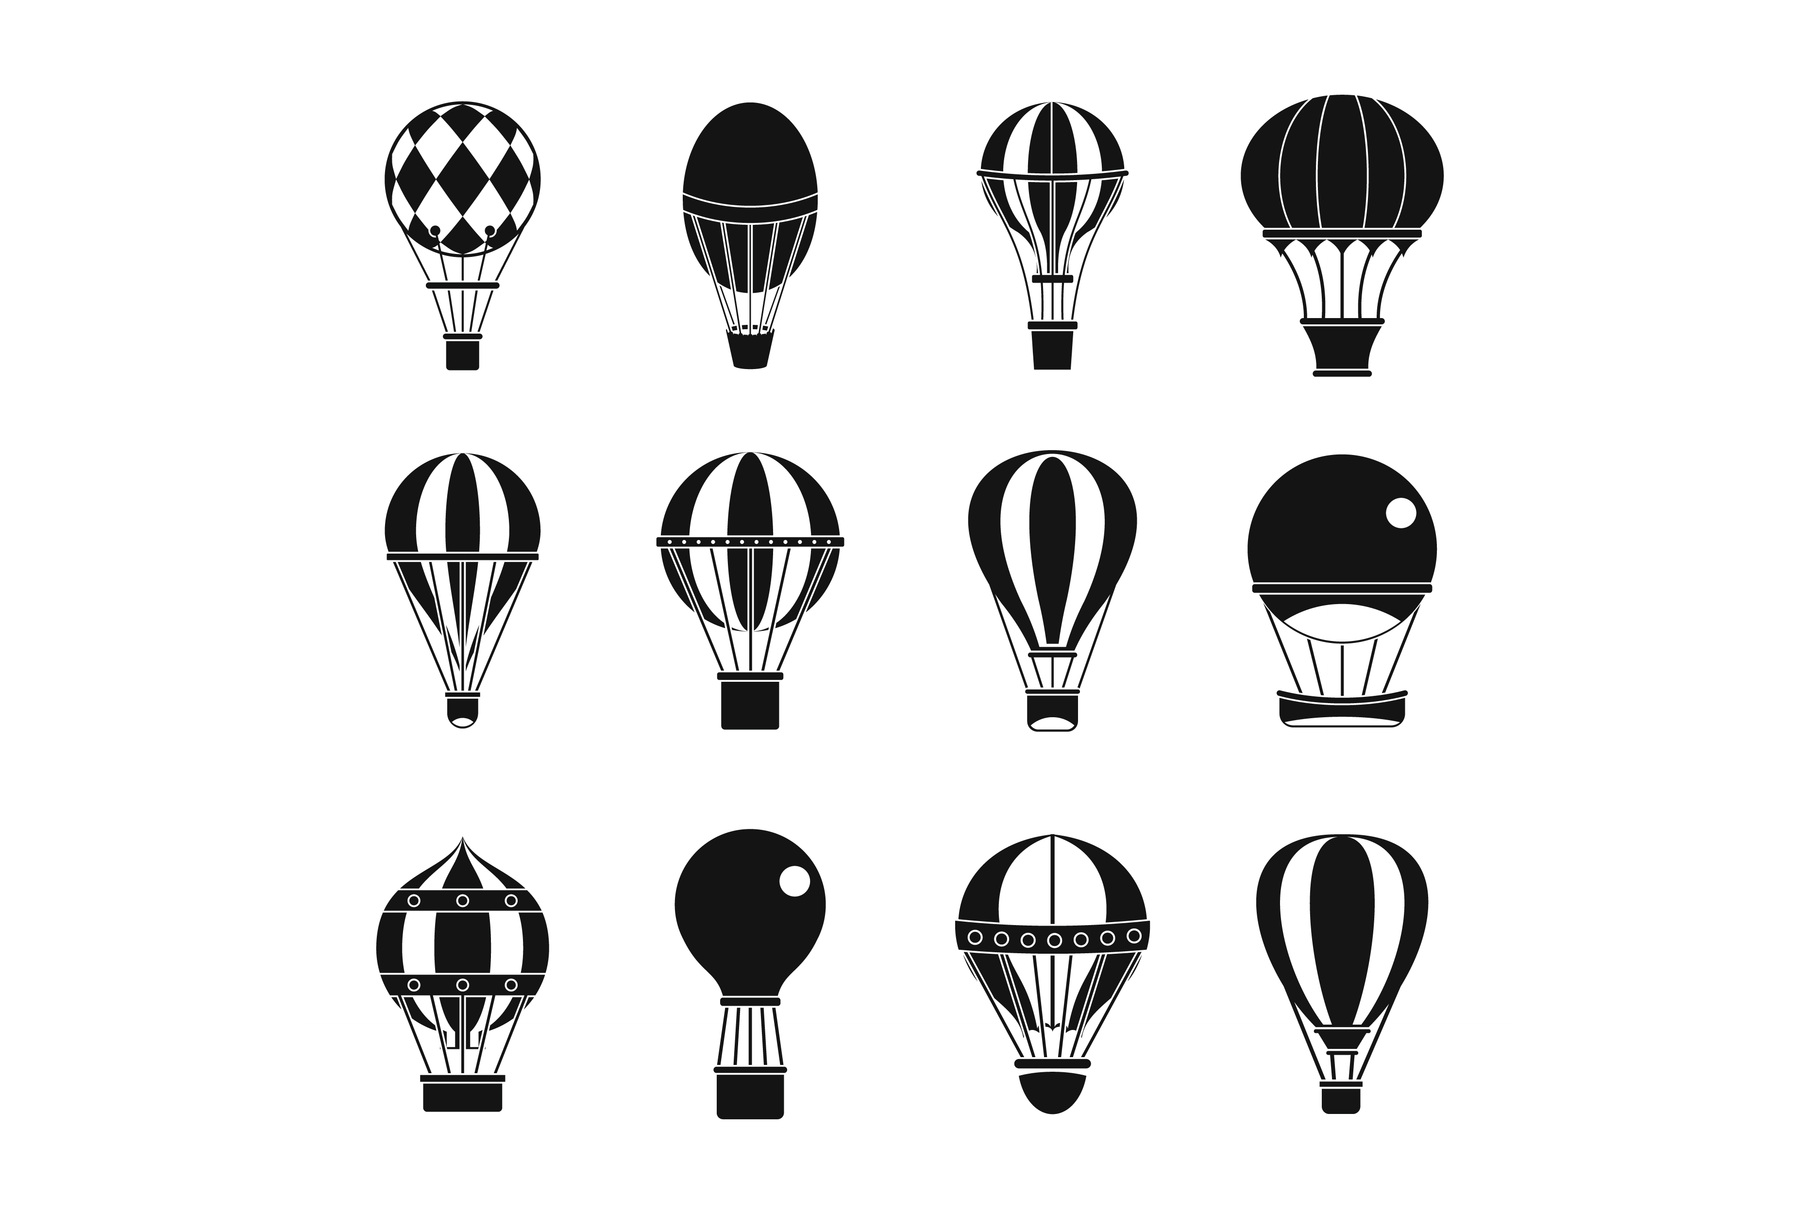 Air ballon icon set, simple style example image 1